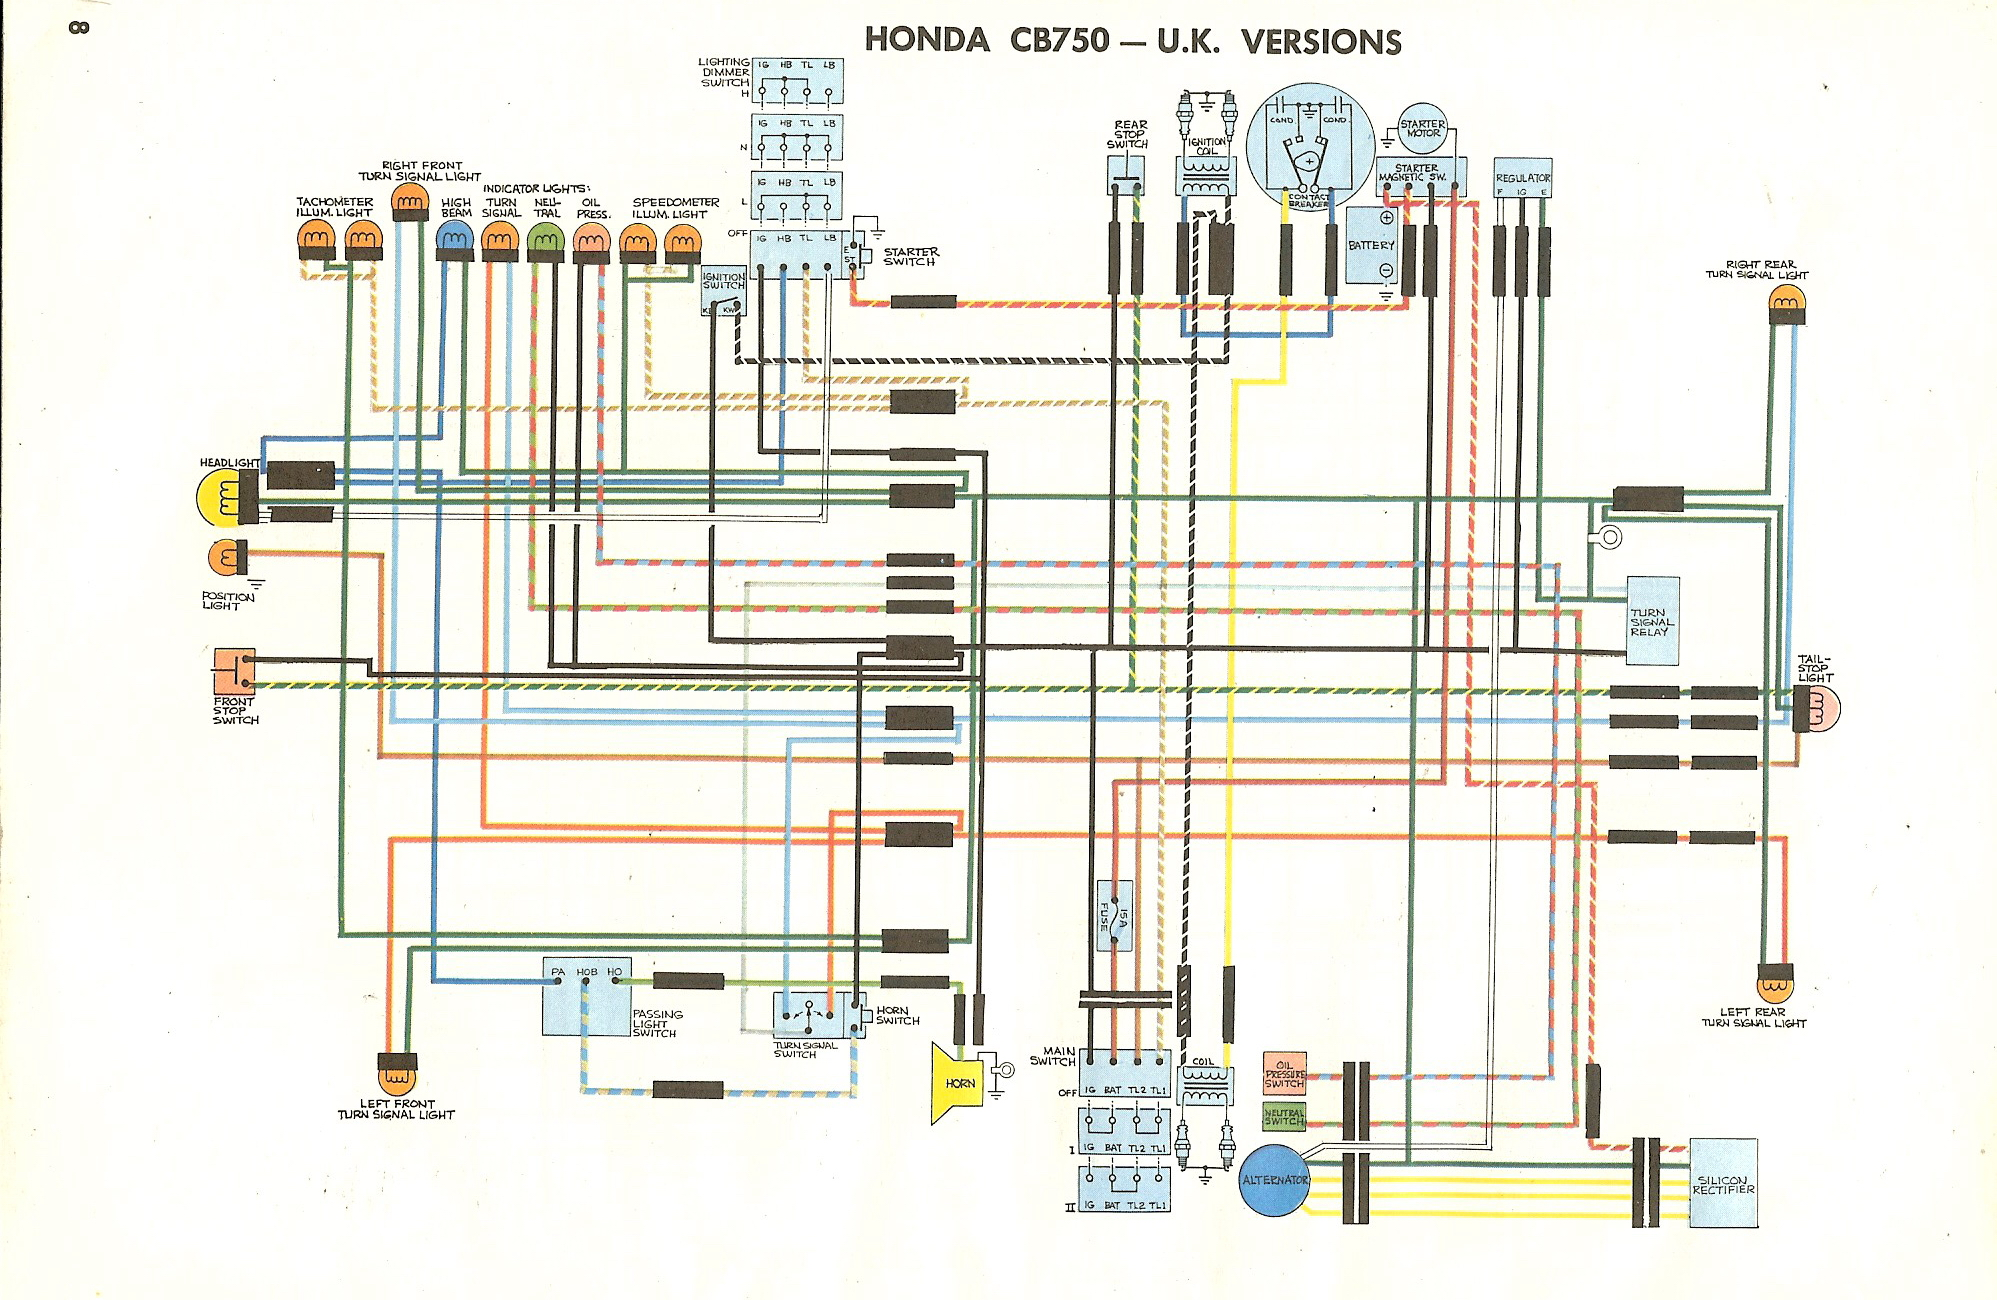 1976 Honda Cb750 Wiring Diagram - wiring diagrams schematics